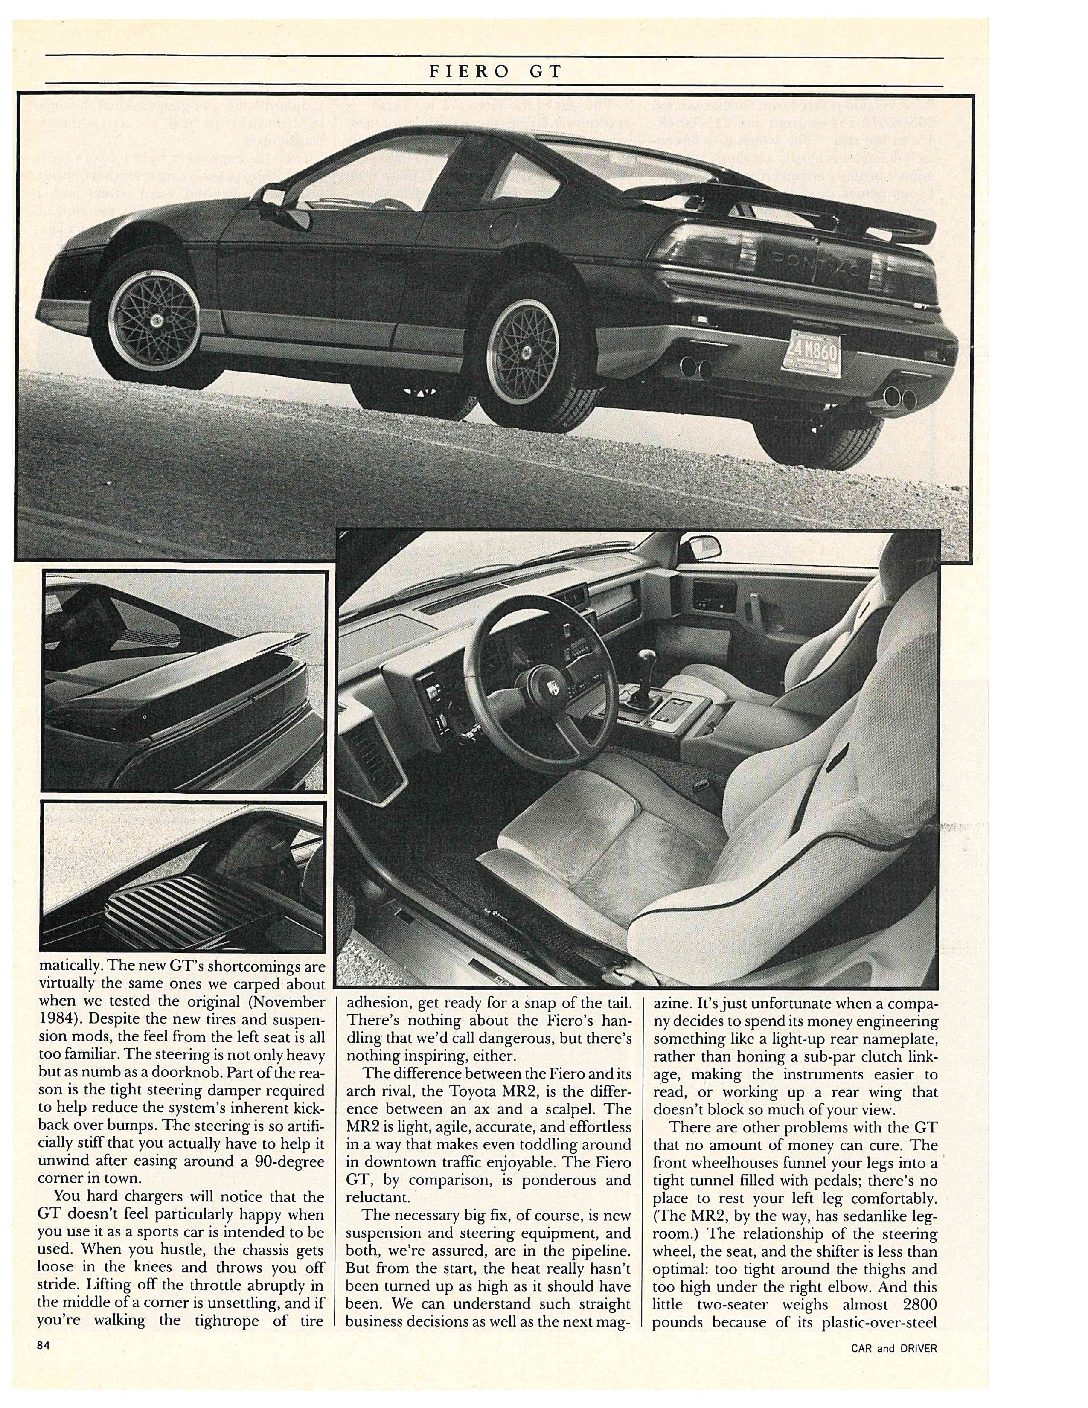 Pontiac Fiero GT review by Car and Driver magazine page 3.